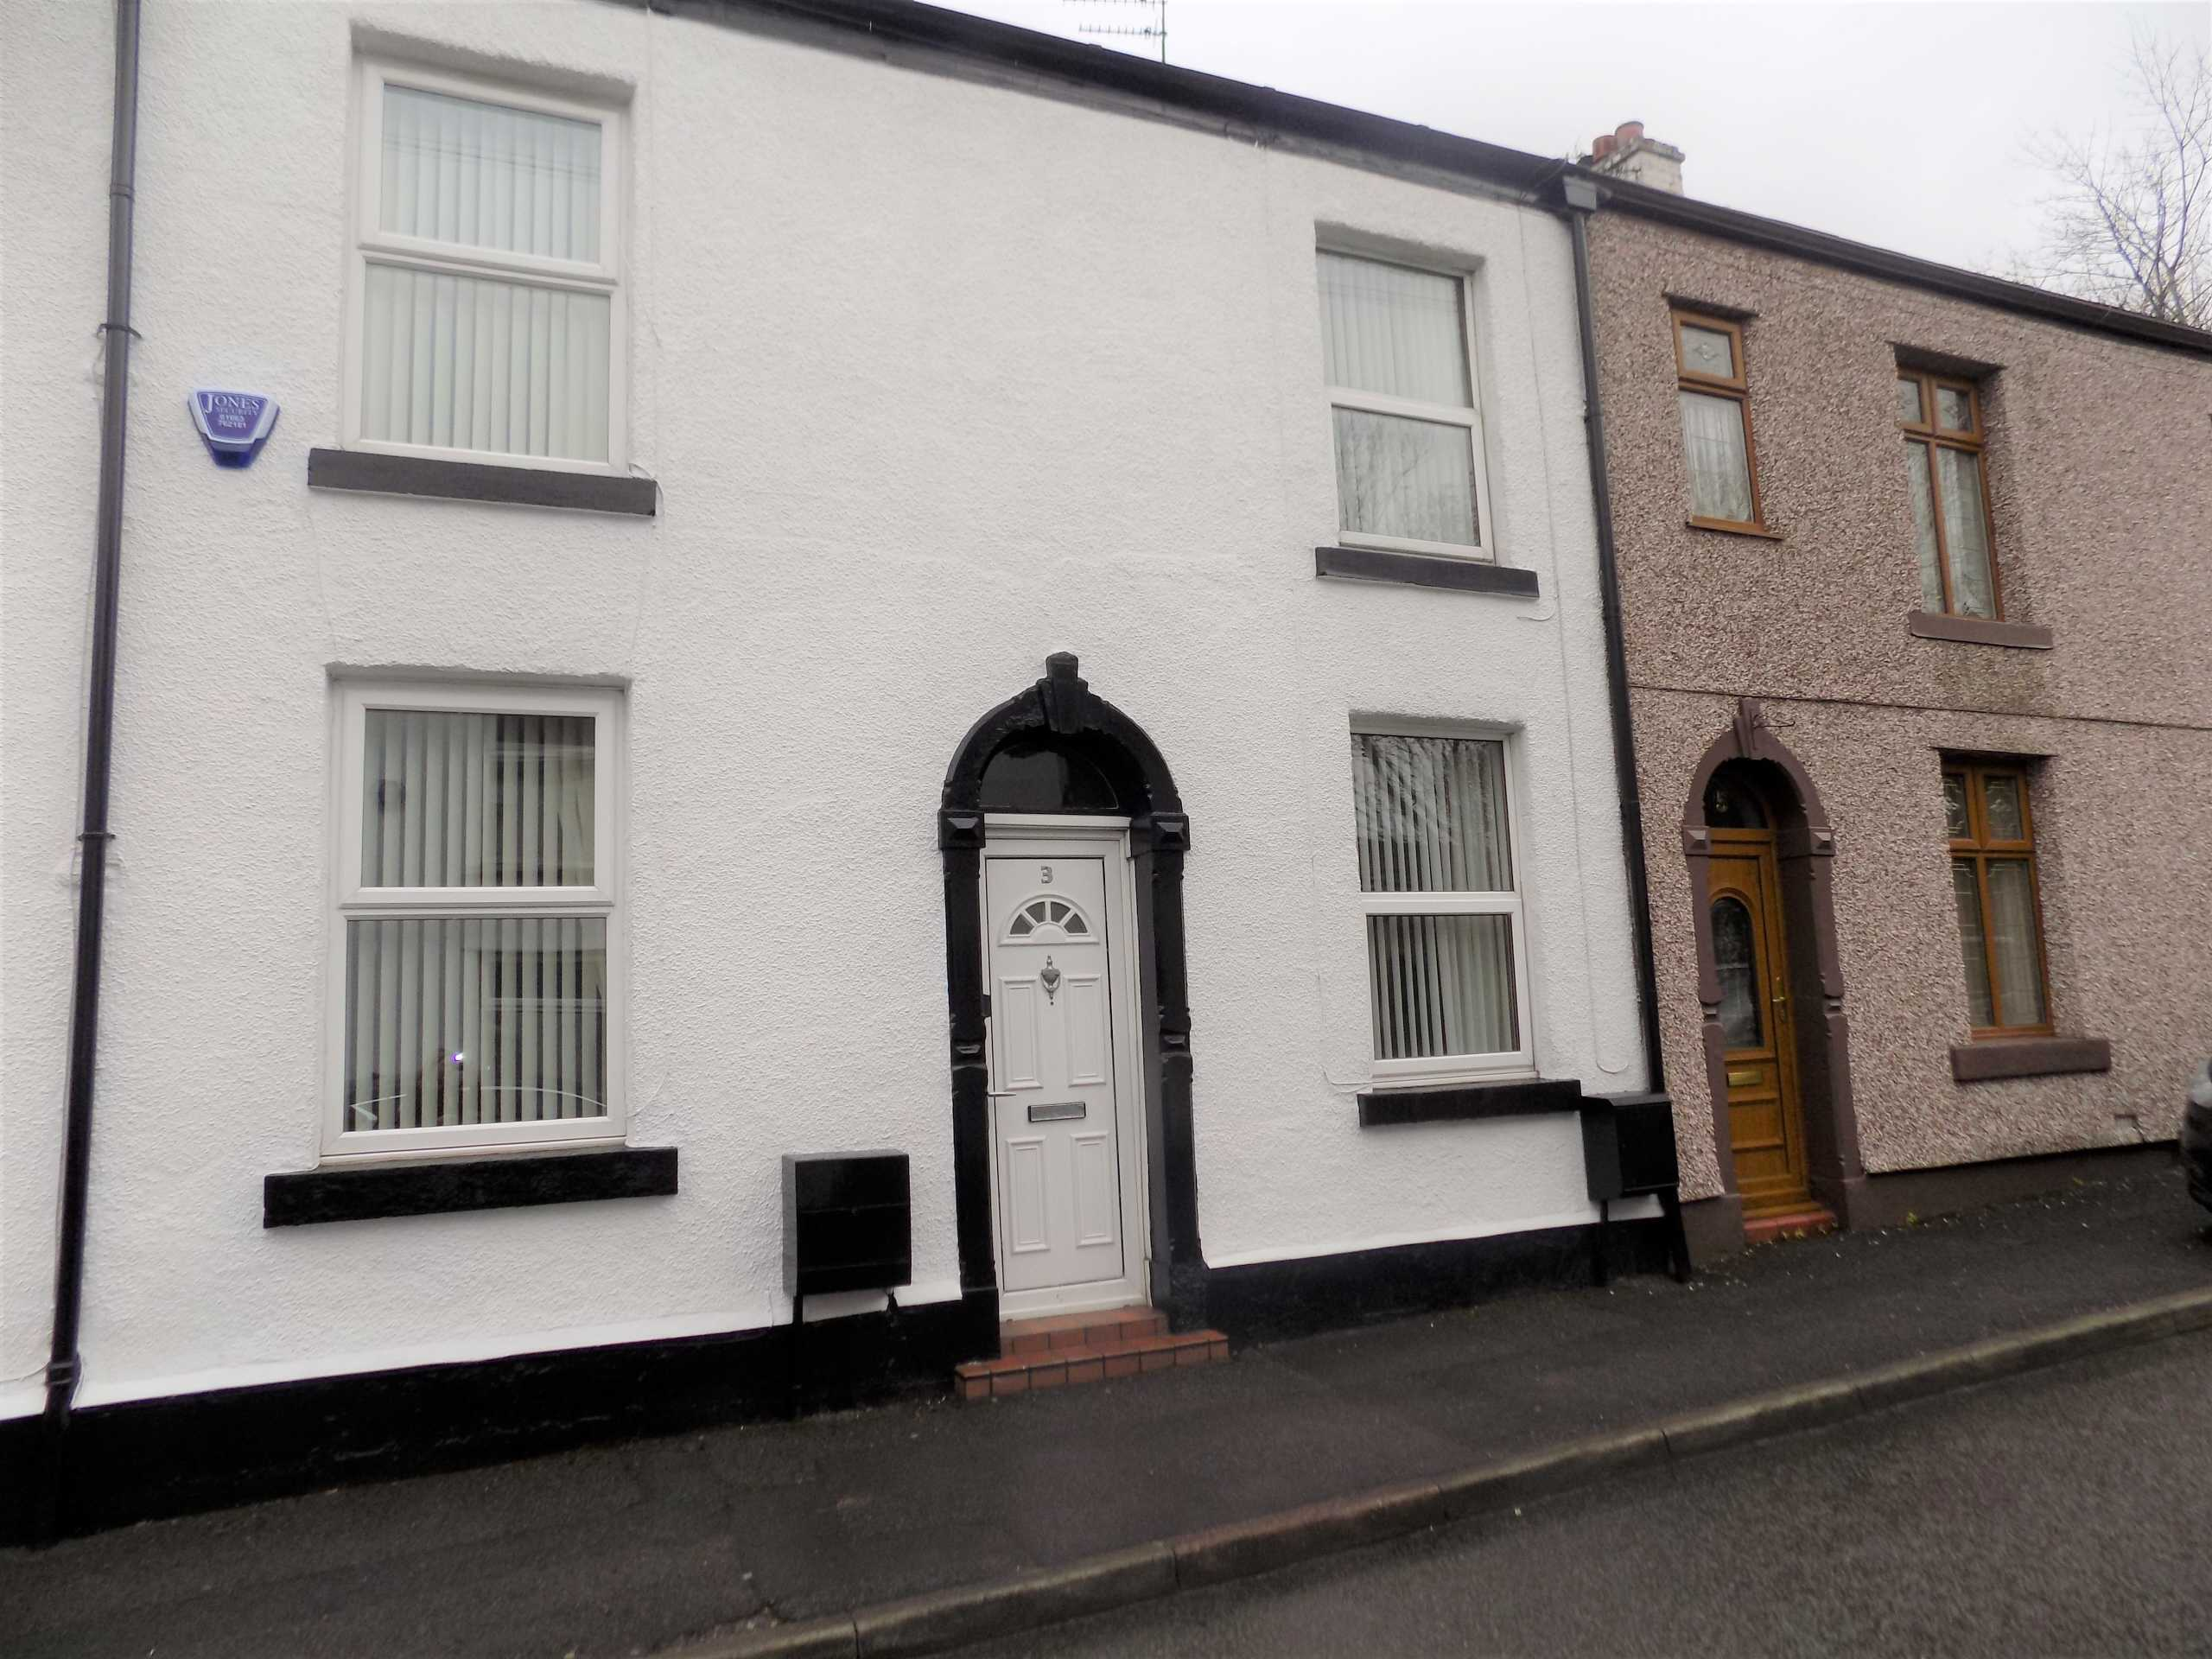 External image of a property on Pine Street